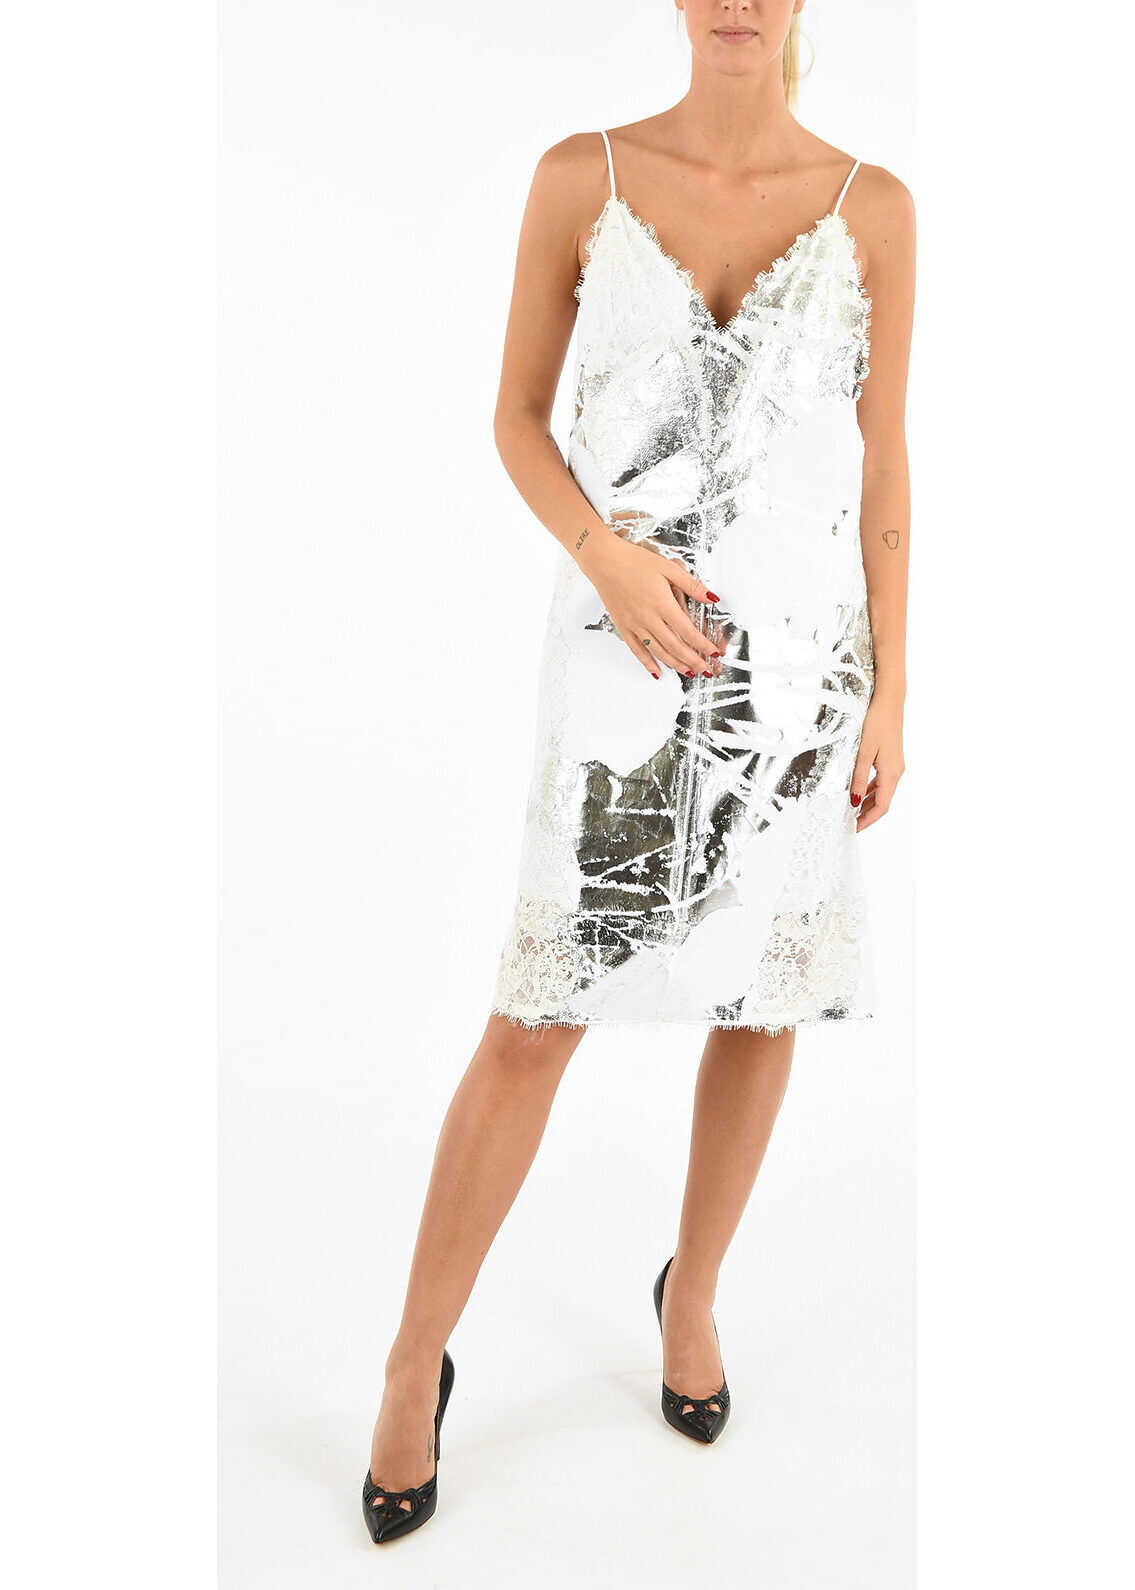 Calvin Klein 205W39NYC ANDY WARHOL Laced Printed Dress WHITE